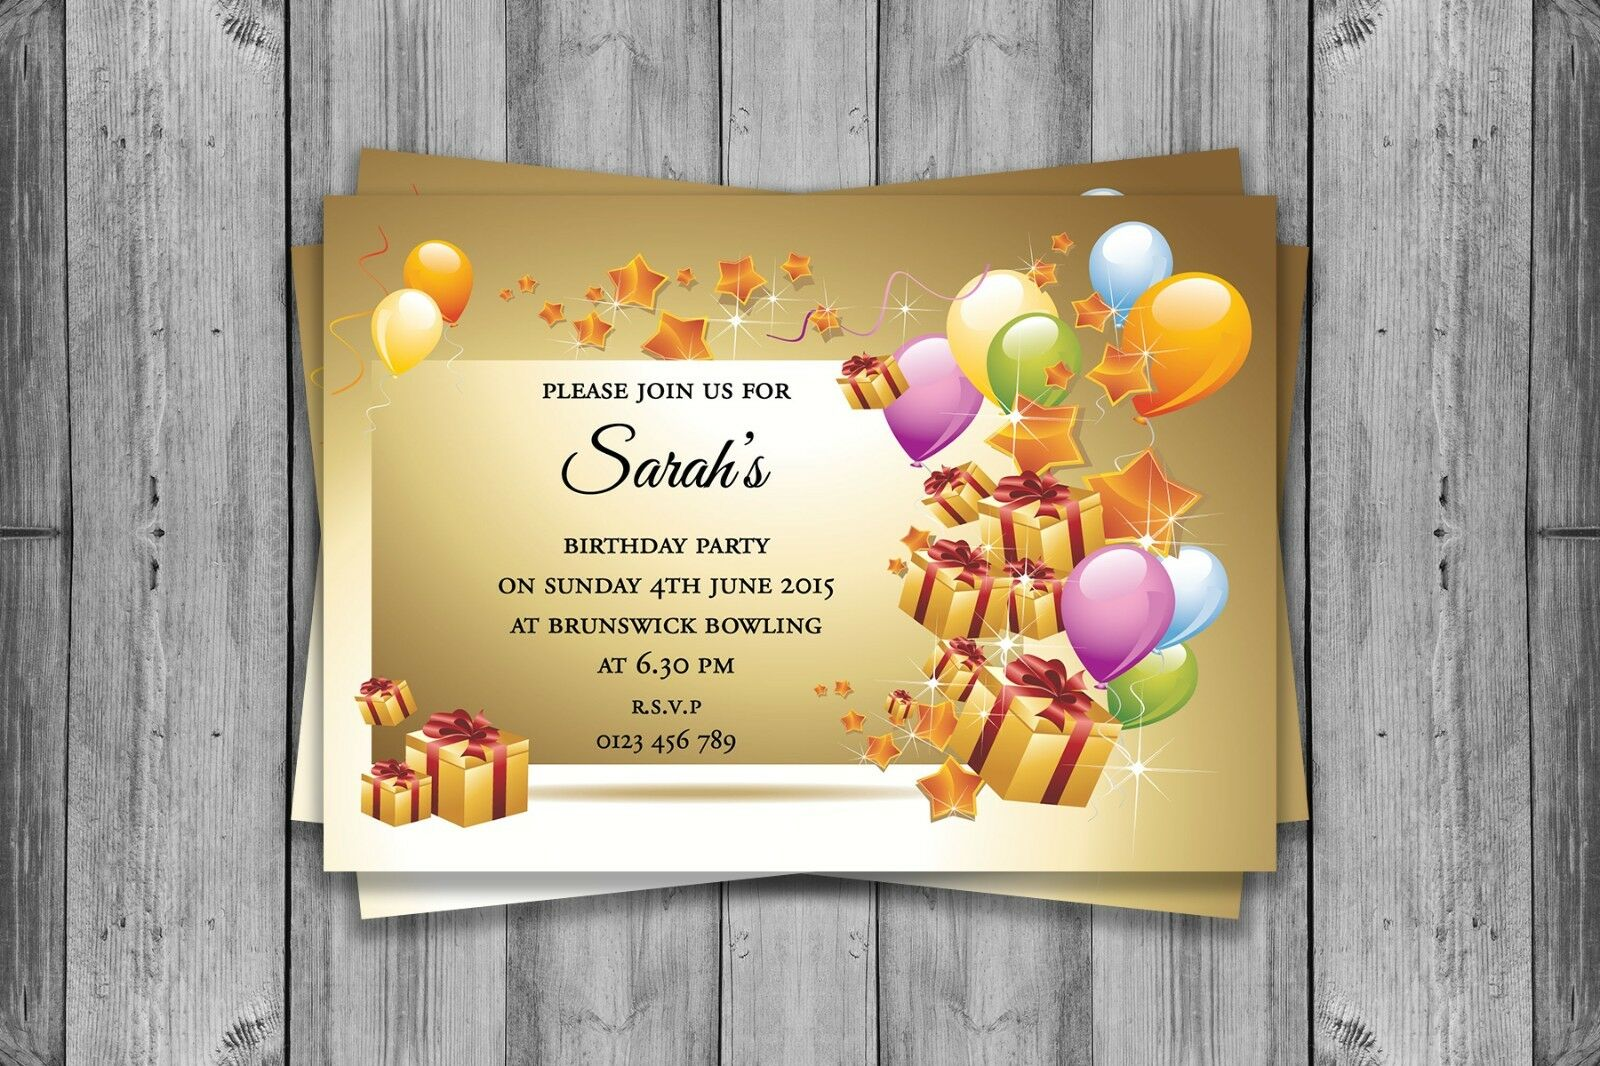 PERSONALISED BIRTHDAY INVITATIONS PARTY INVITES 18TH 20TH 30TH 40TH 50TH 60TH Otrgho319 Cards Stationery